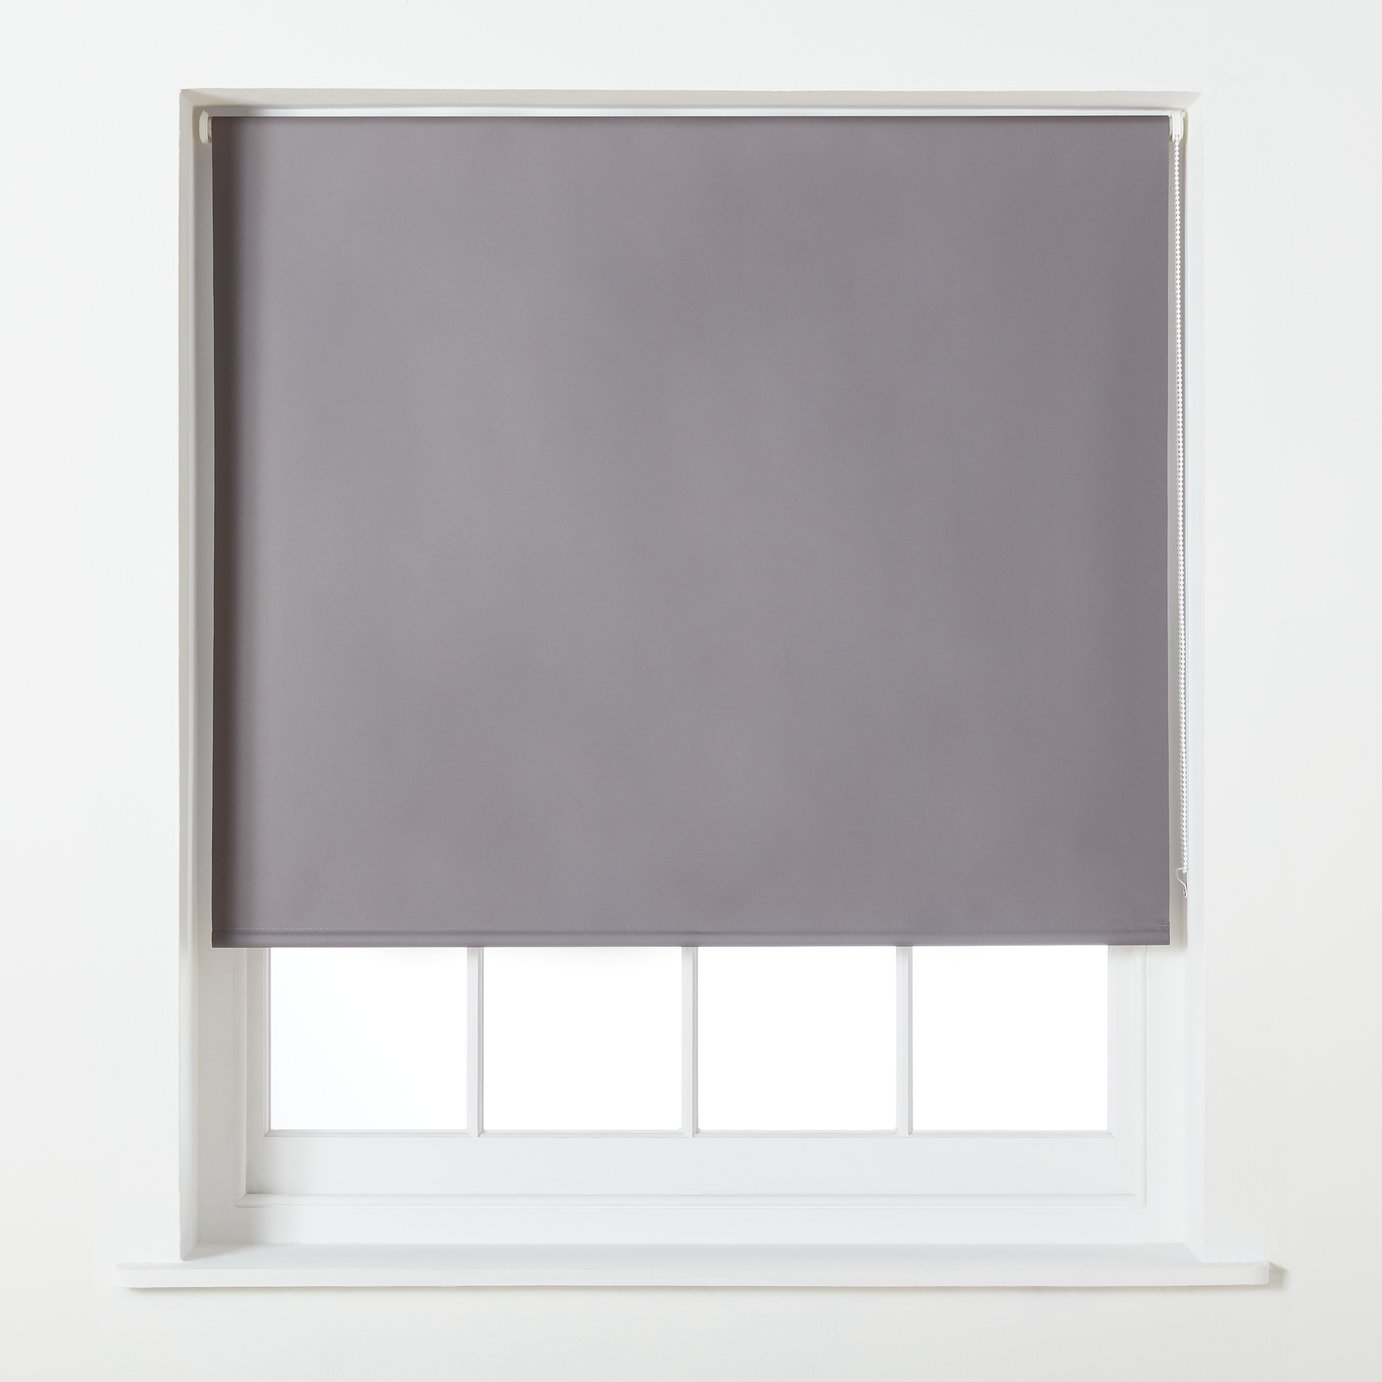 Argos Home Blackout Roller Blind - 4ft - Grey